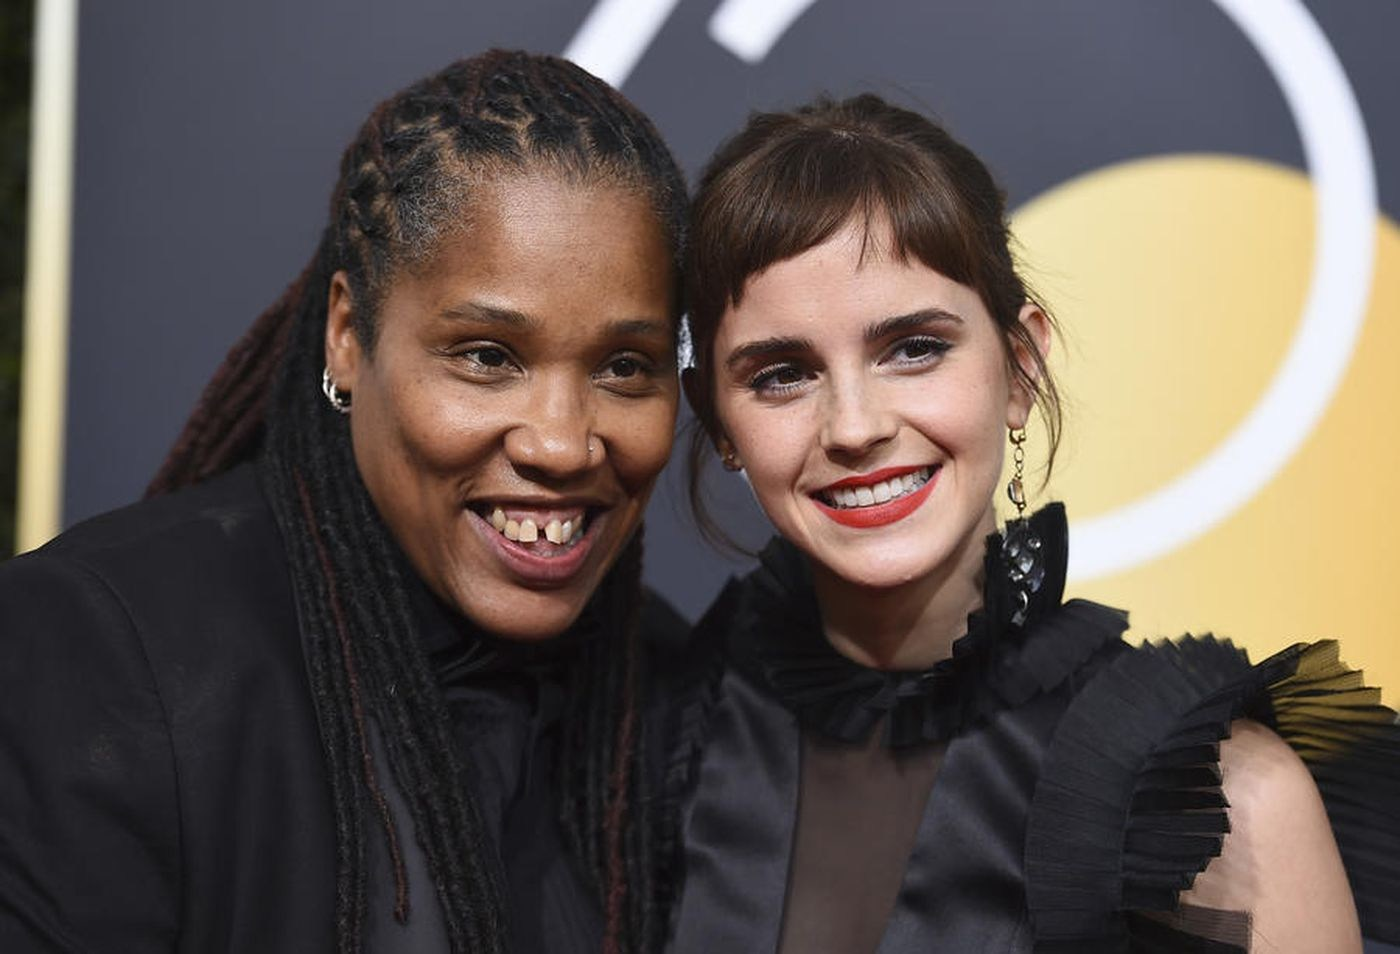 British feminist Marai Larasi (left) with Emma Waston wear black in support of the Time's Up movement at the 2017 Golden Globe Awards.